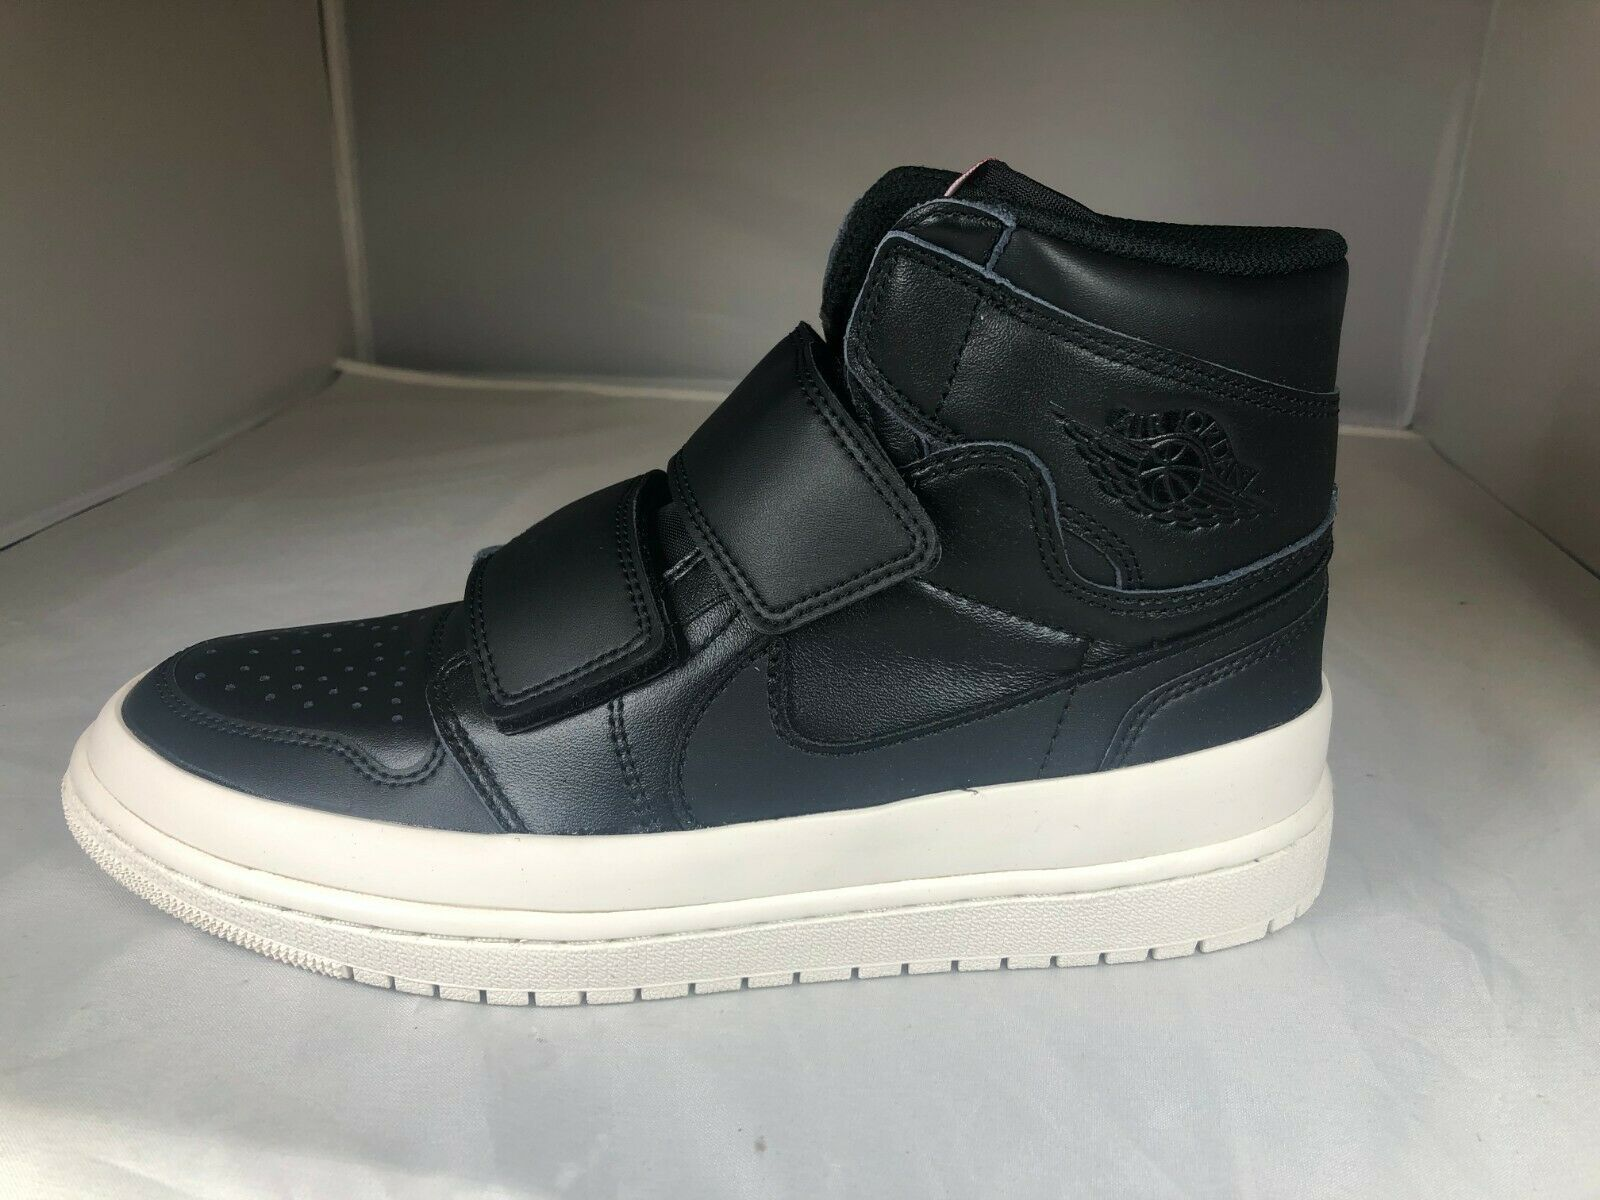 Air Jordan 1 Re Hi Double Strp Outlet Online, UP TO 52% OFF